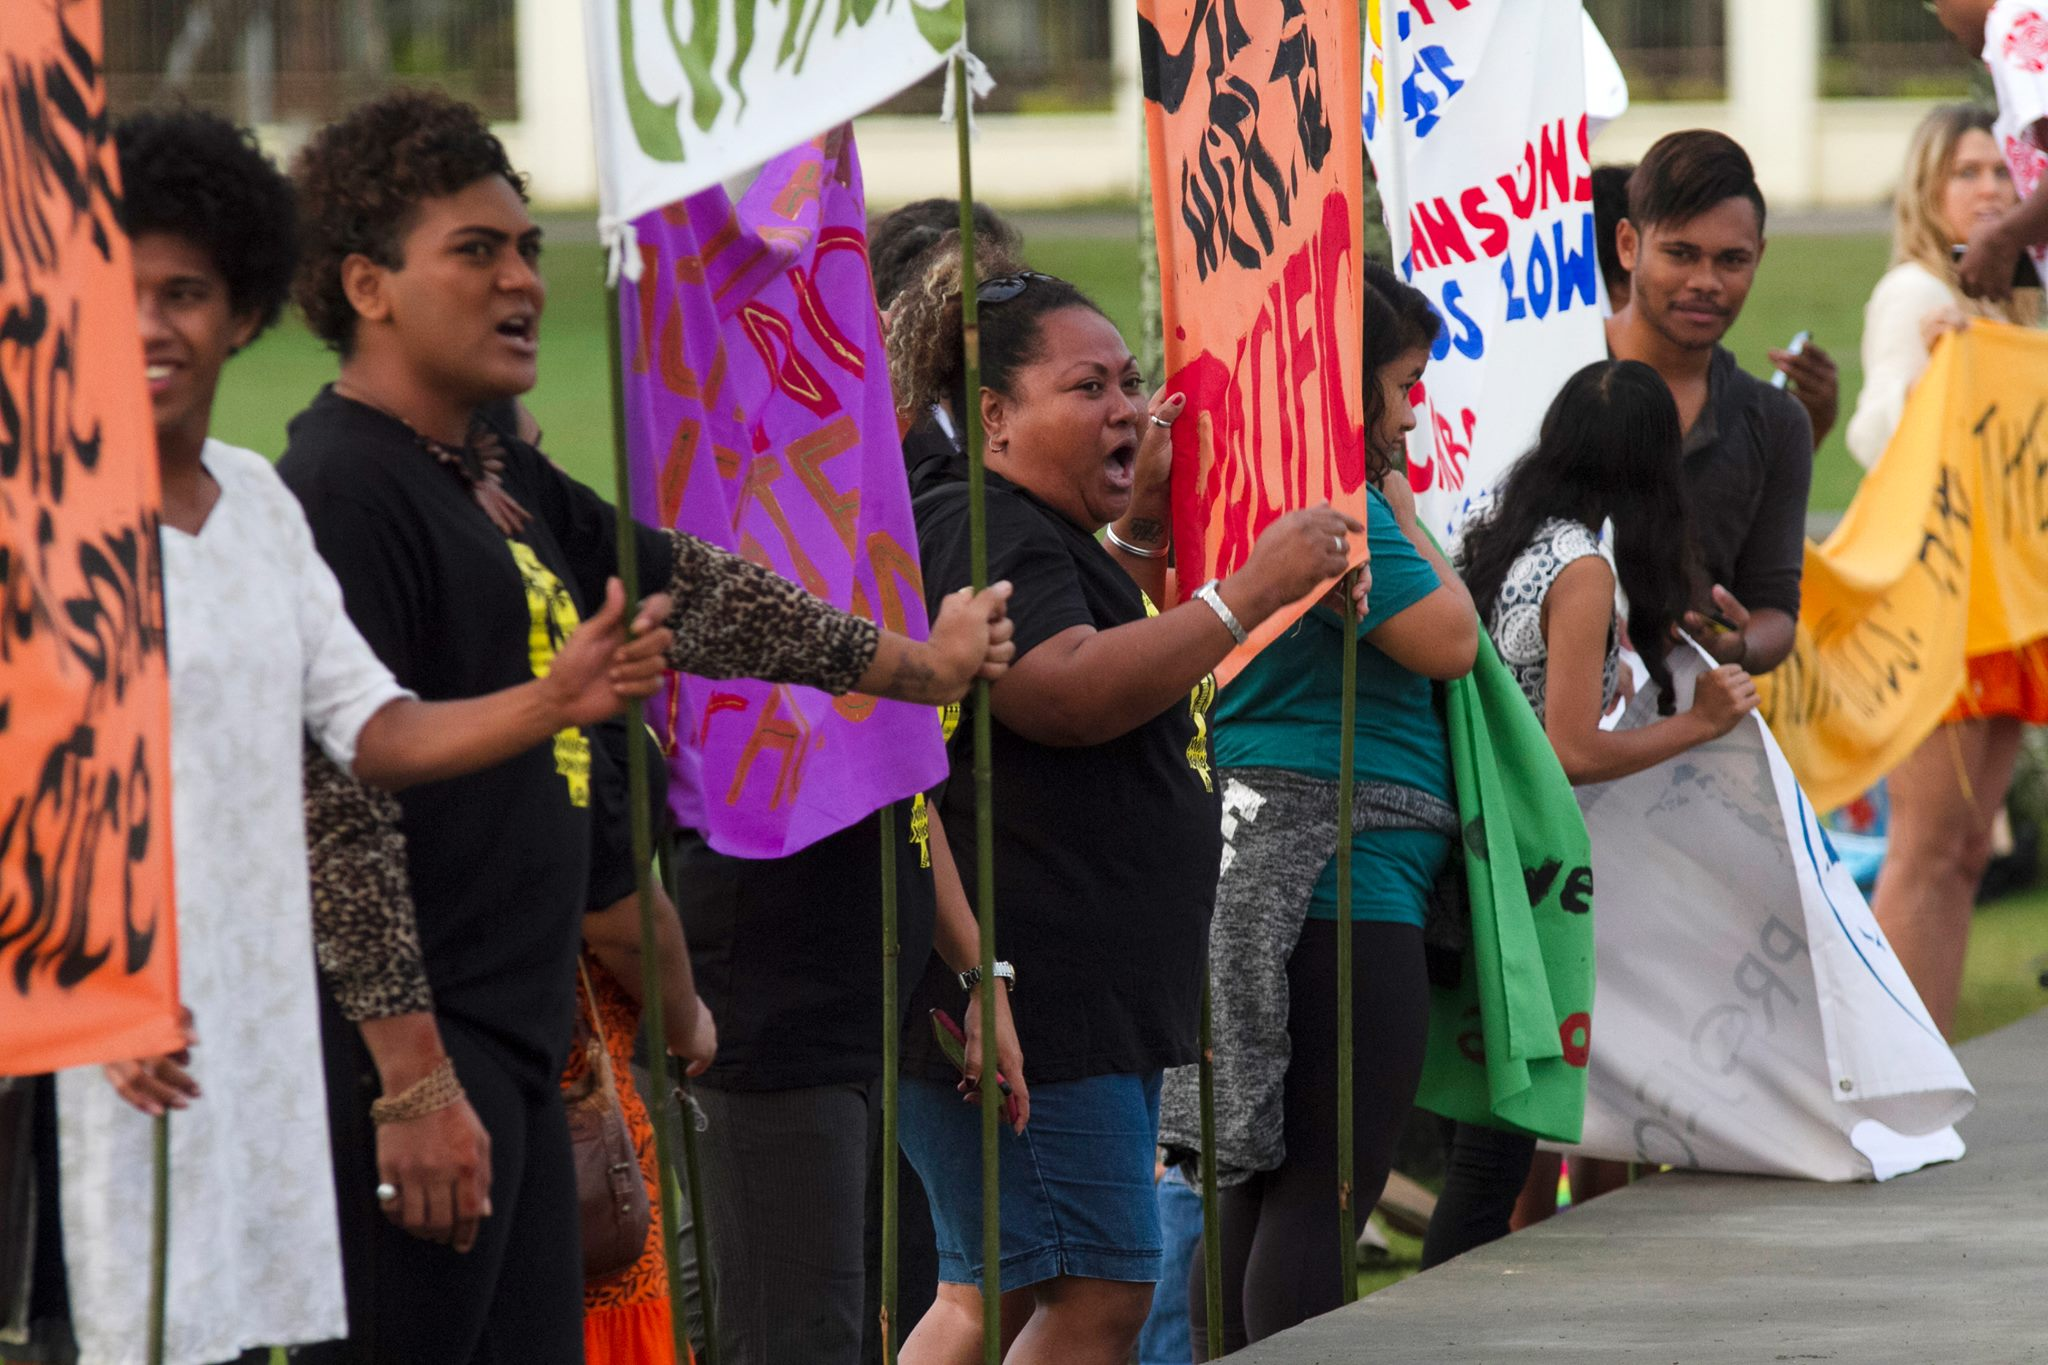 Activists in Albert Park Suva July 3rd before Climate Action Pacific Partnerships conference